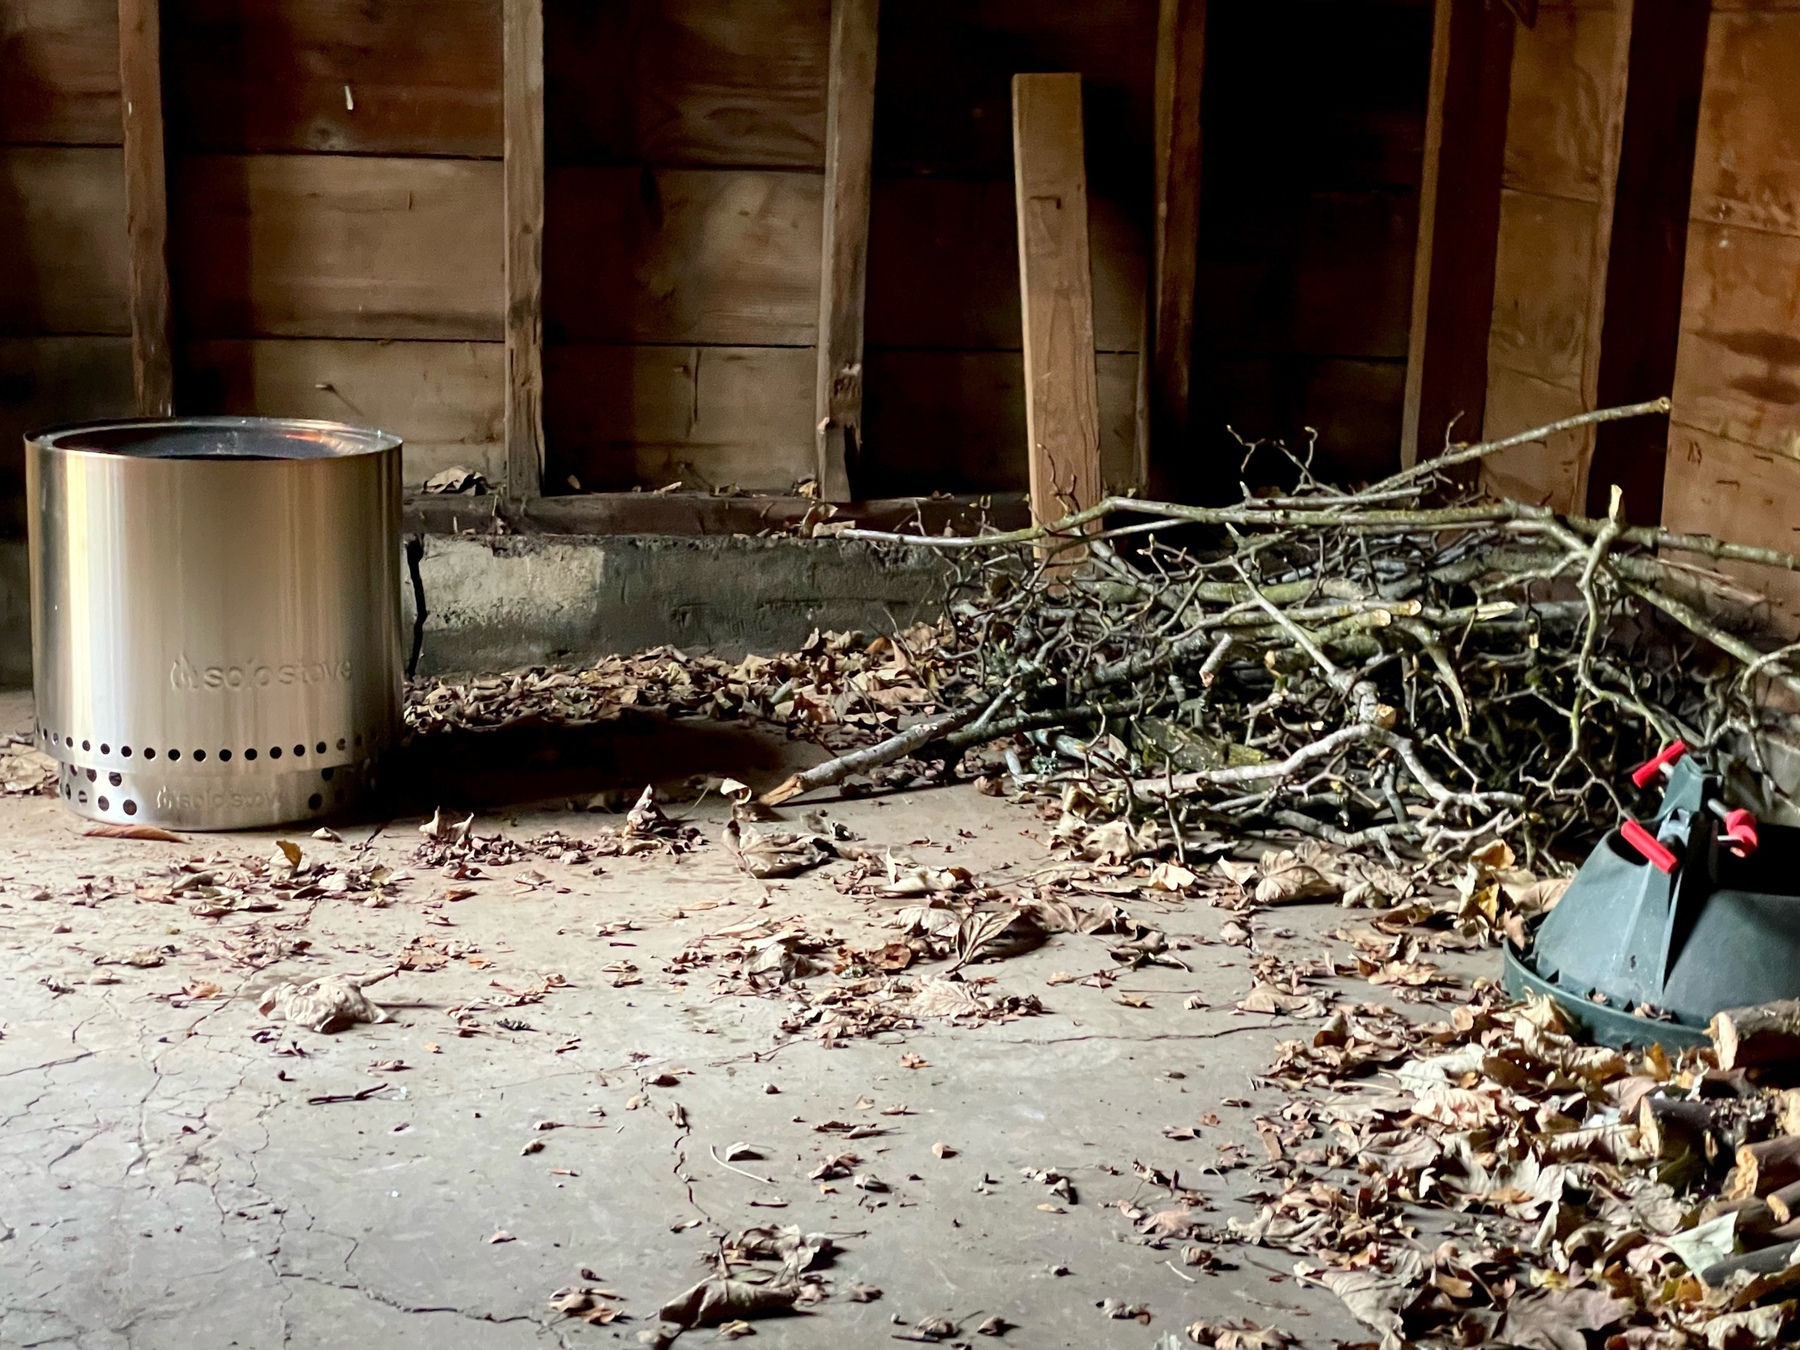 Steel fire pit and pile of branches in wooden garage.